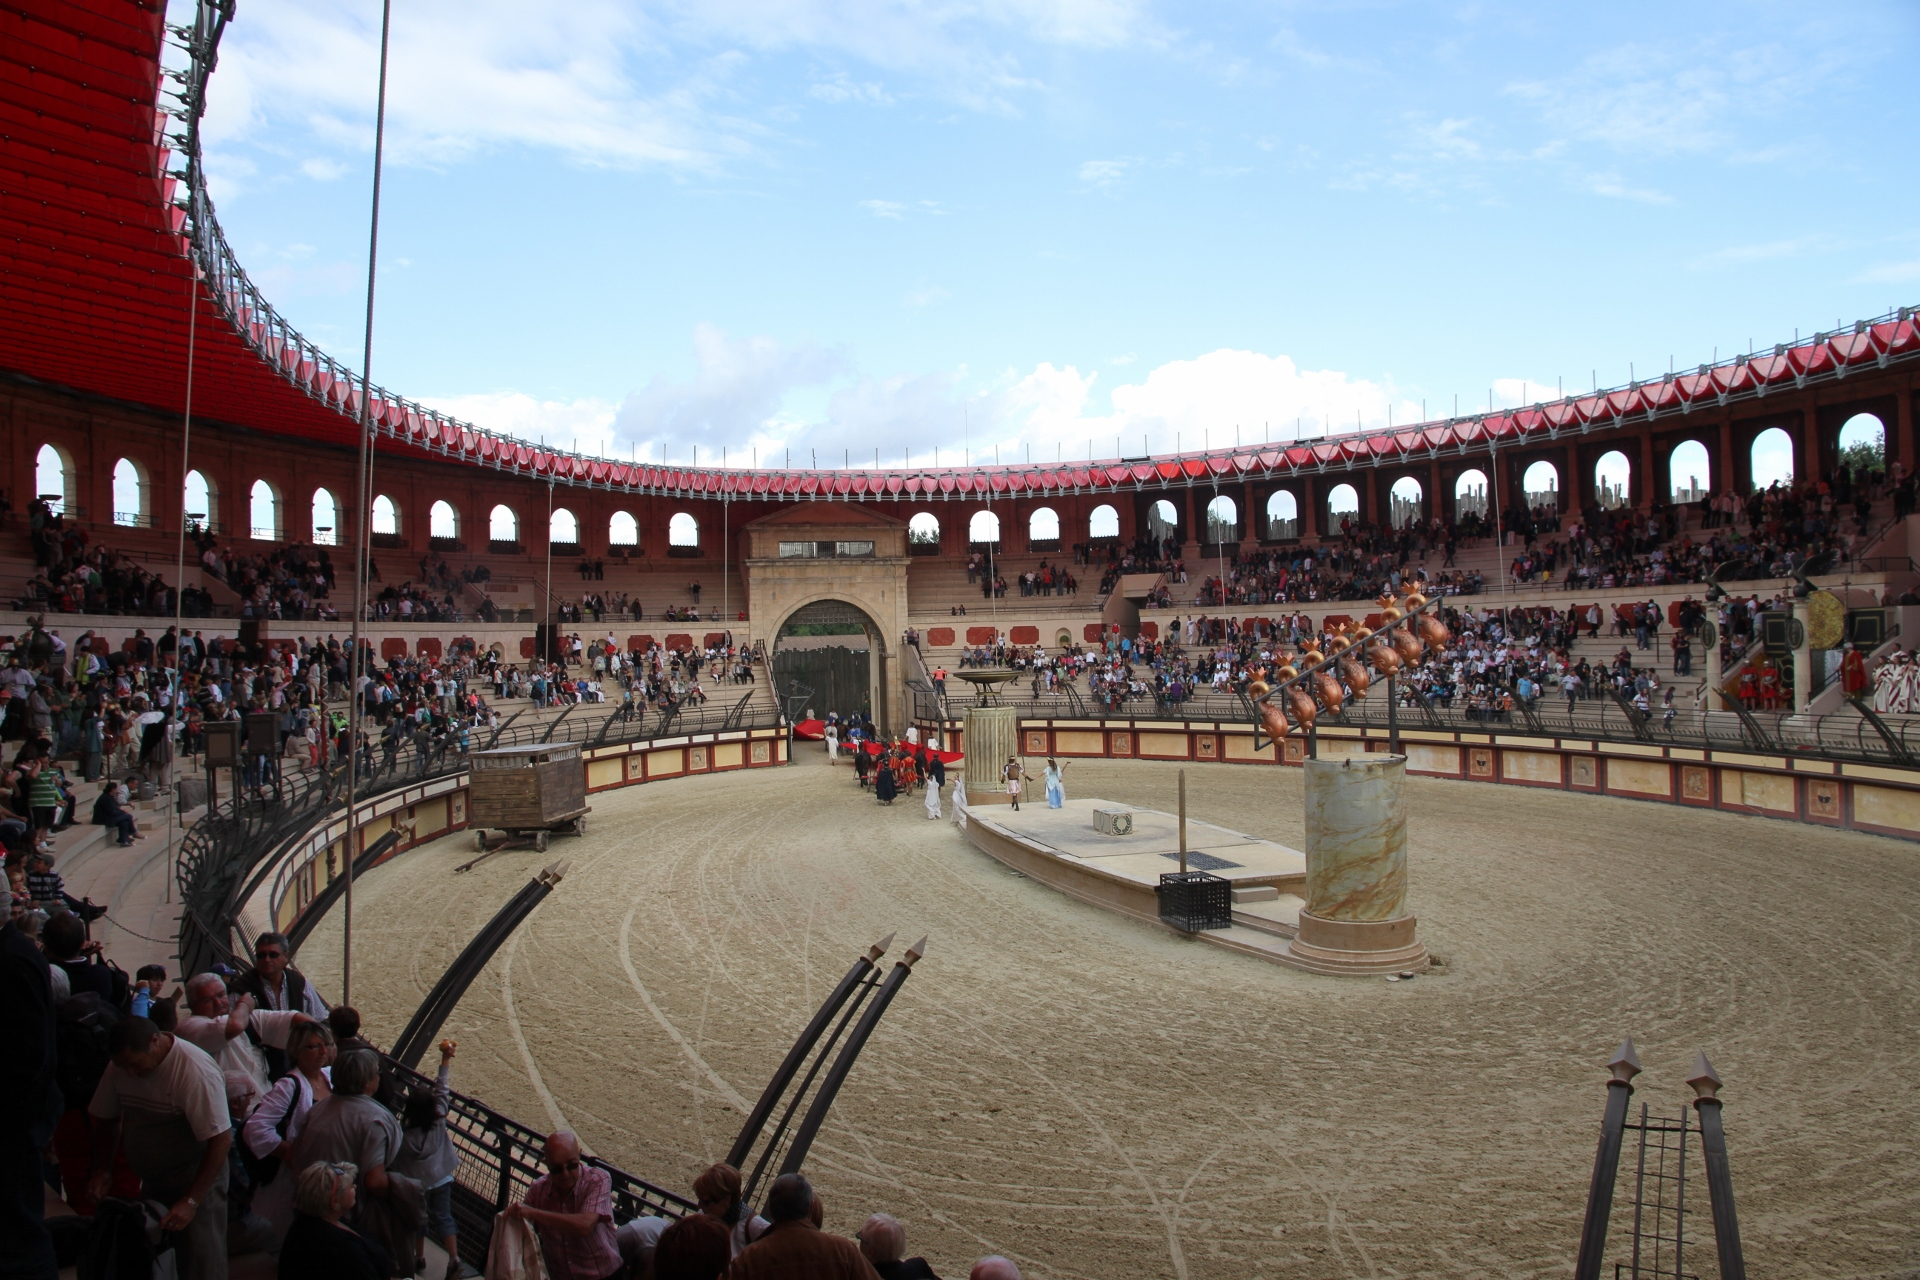 Spectacle de gladiateurs au Puy du Fou